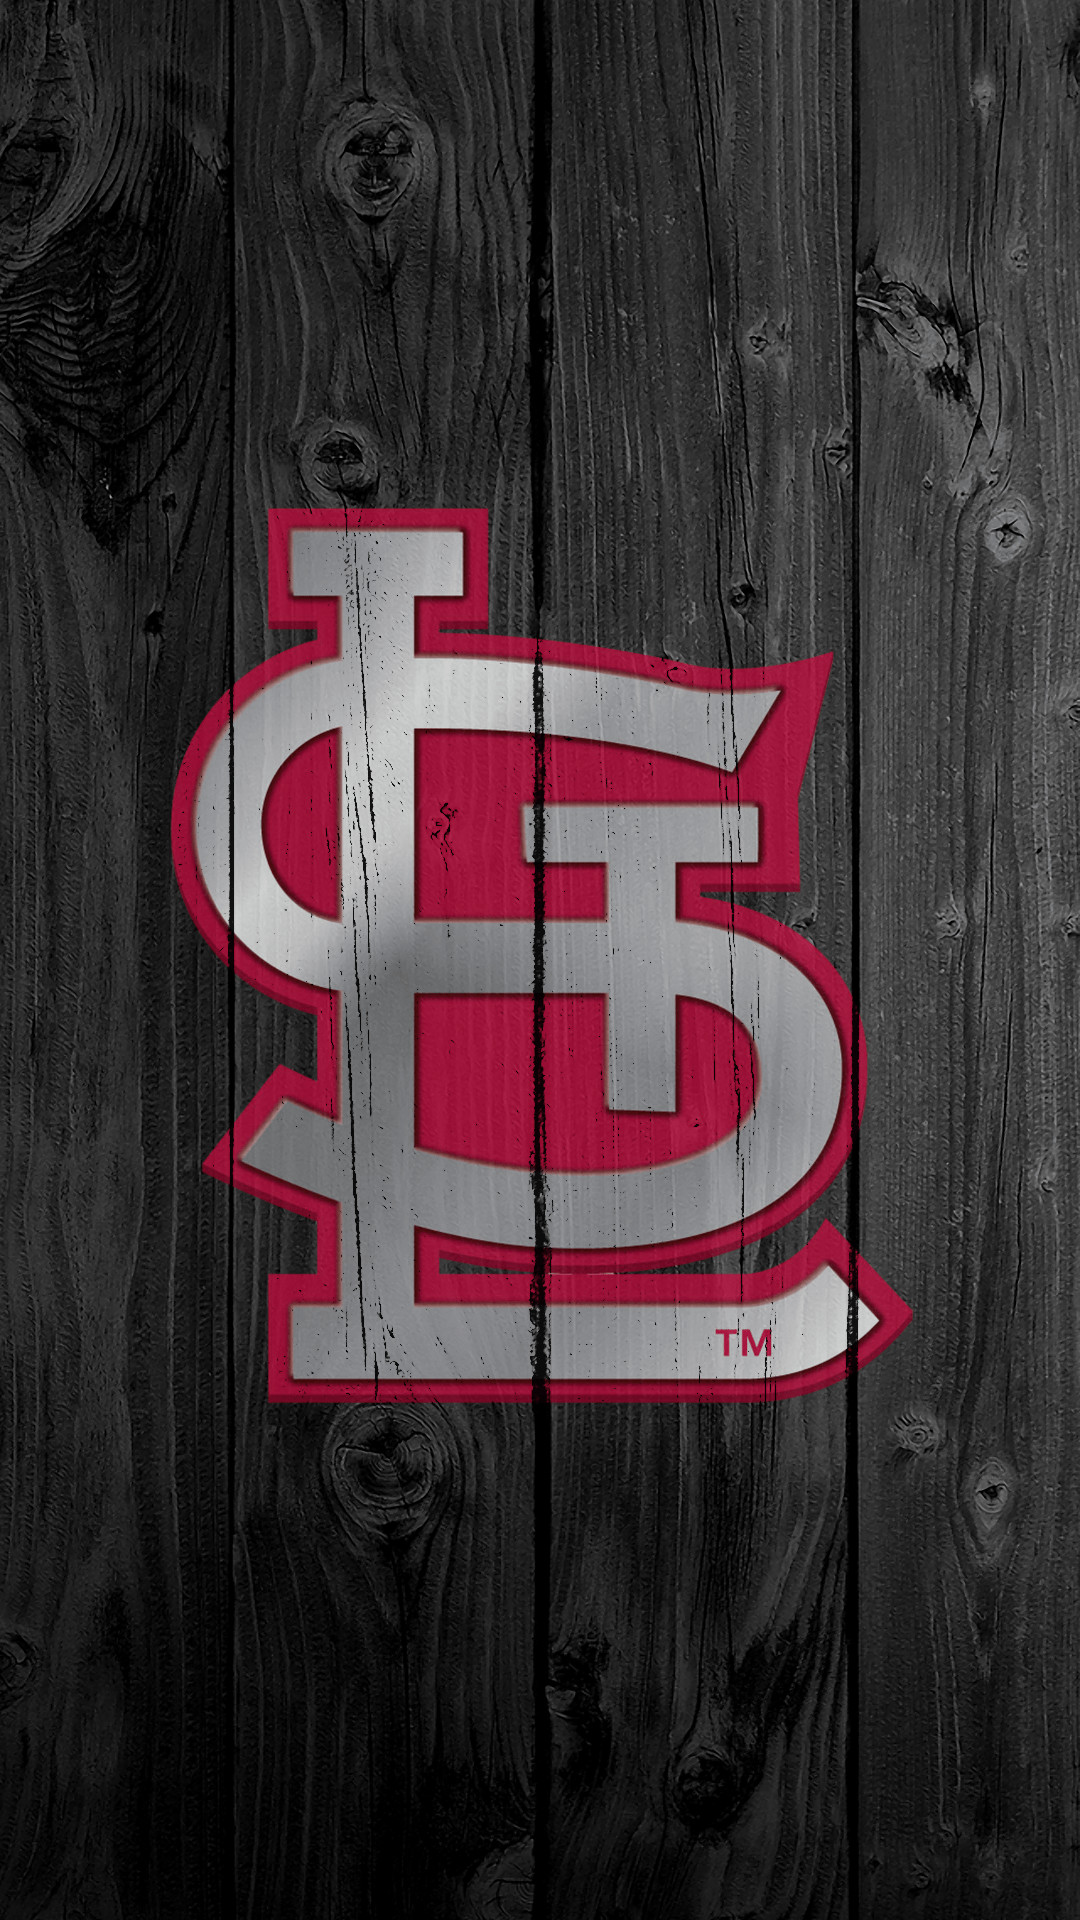 1080x1920 Stl Cardinals Wallpapers Wallpaper Hd